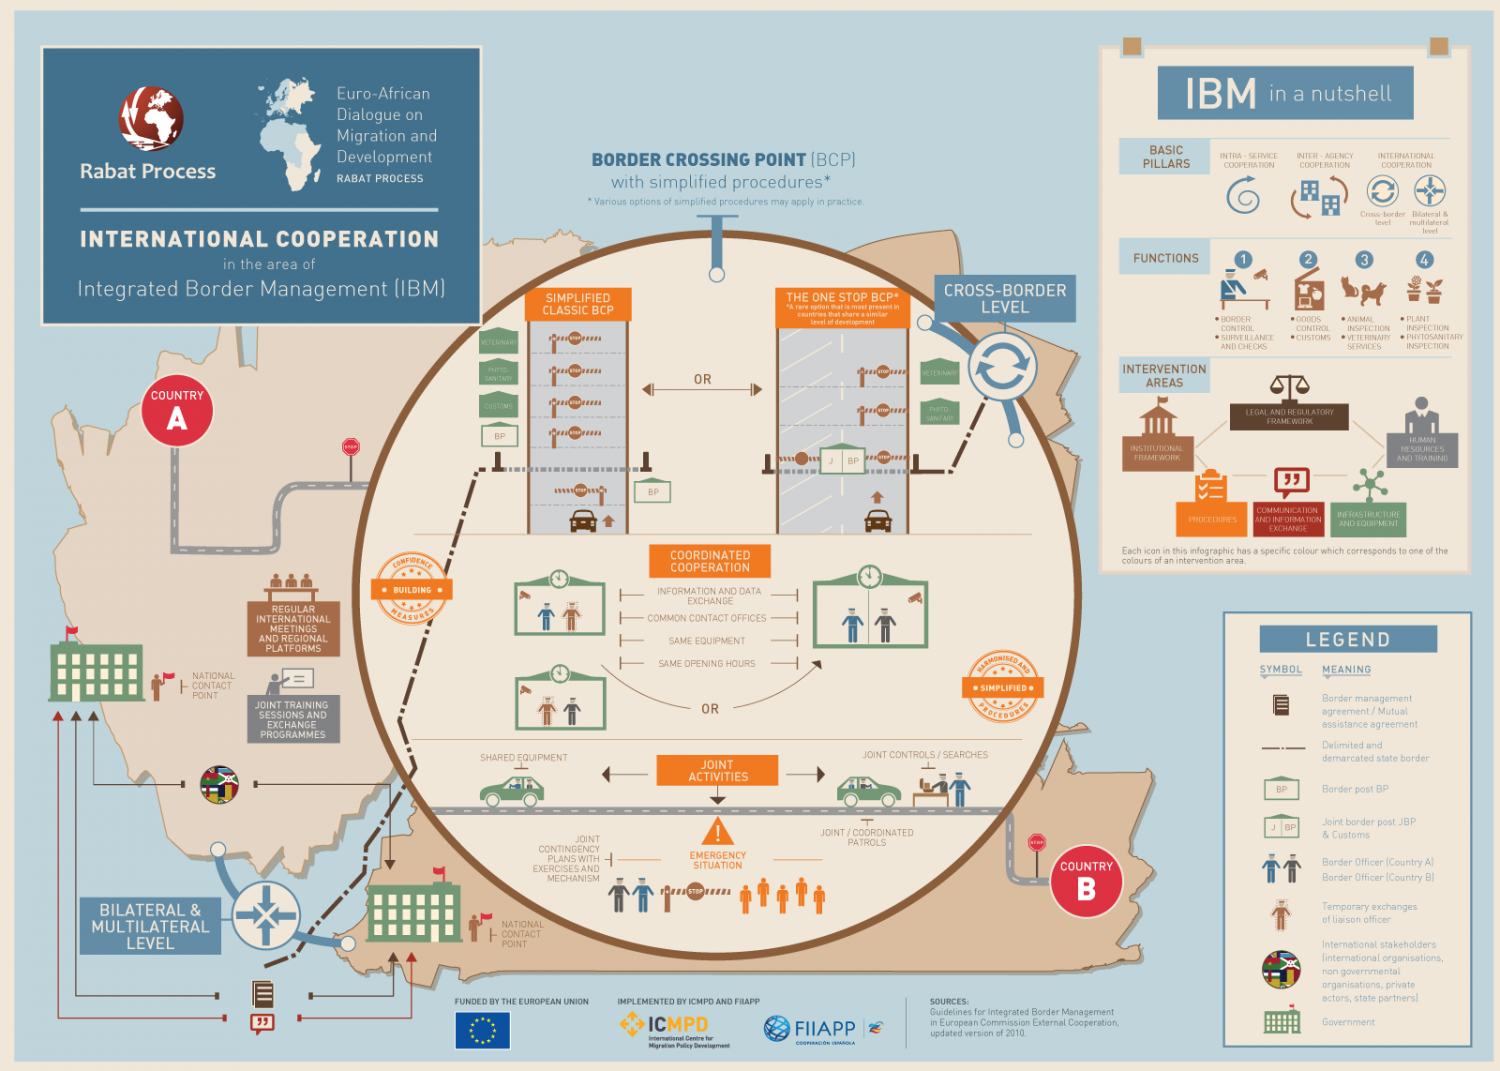 International cooperation in the area of Integrated Border Management (IBM) Infographic